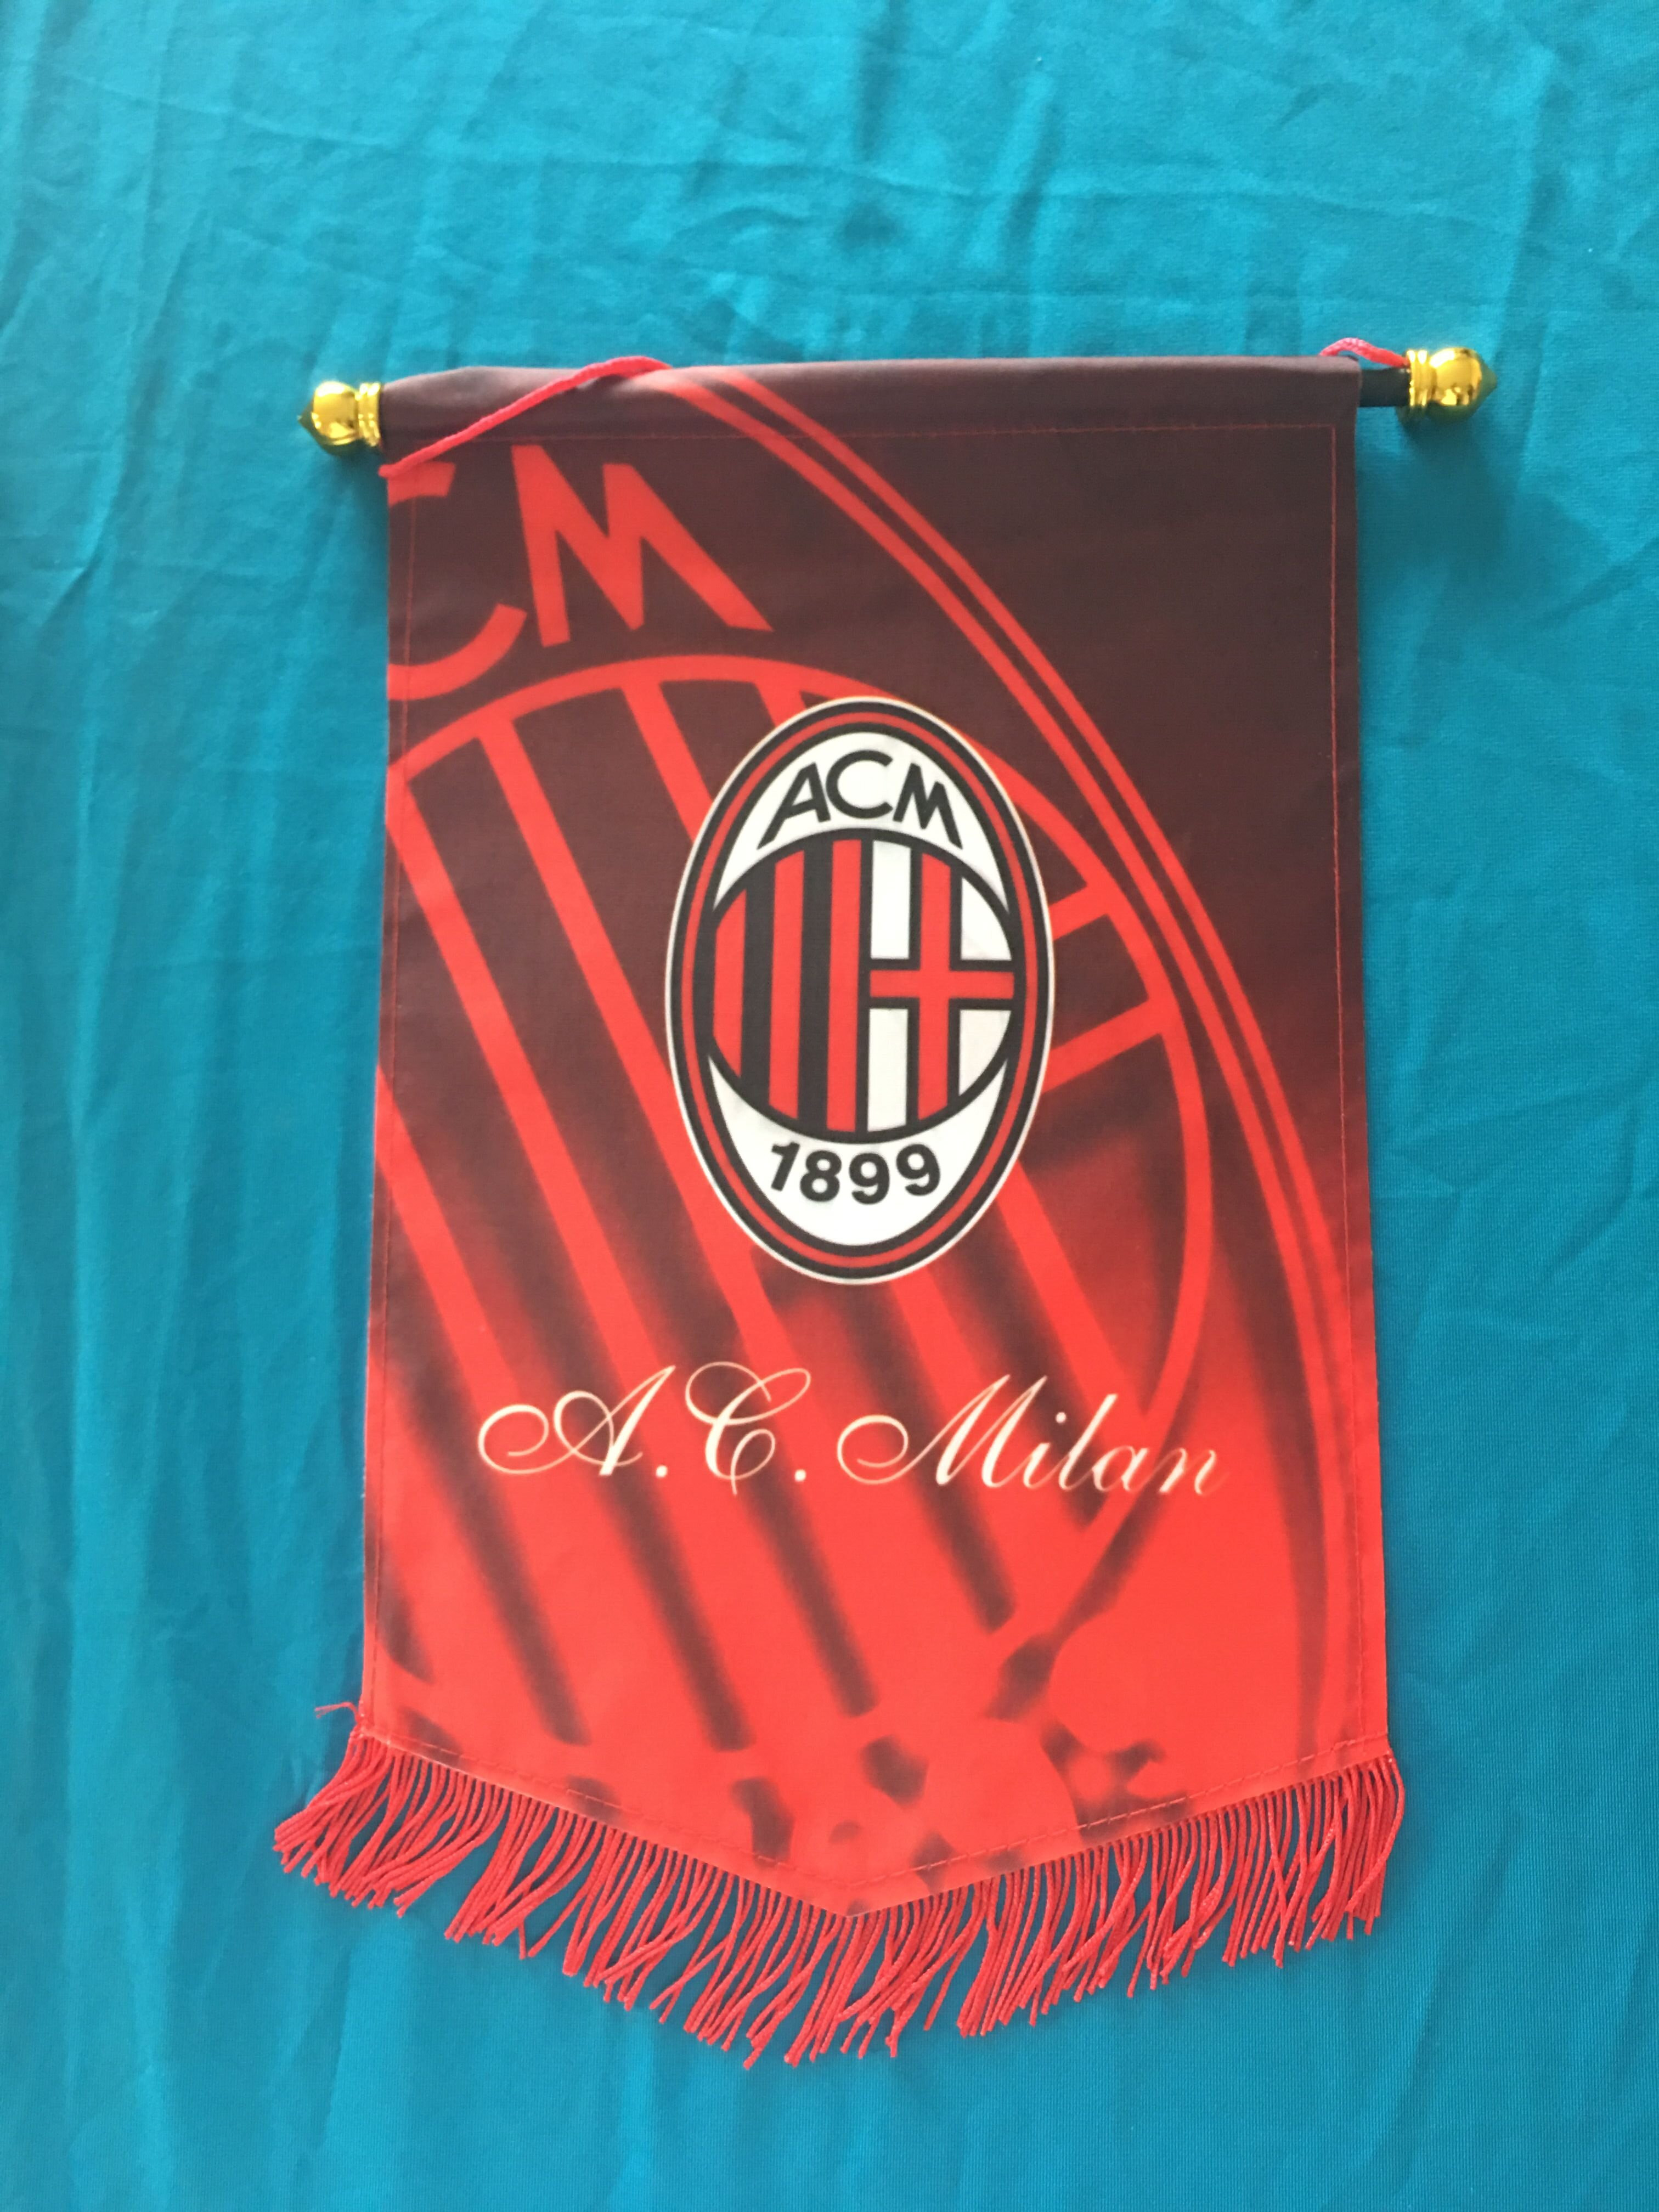 AC Milan Hang Flag Decor Football Fans Souvenir